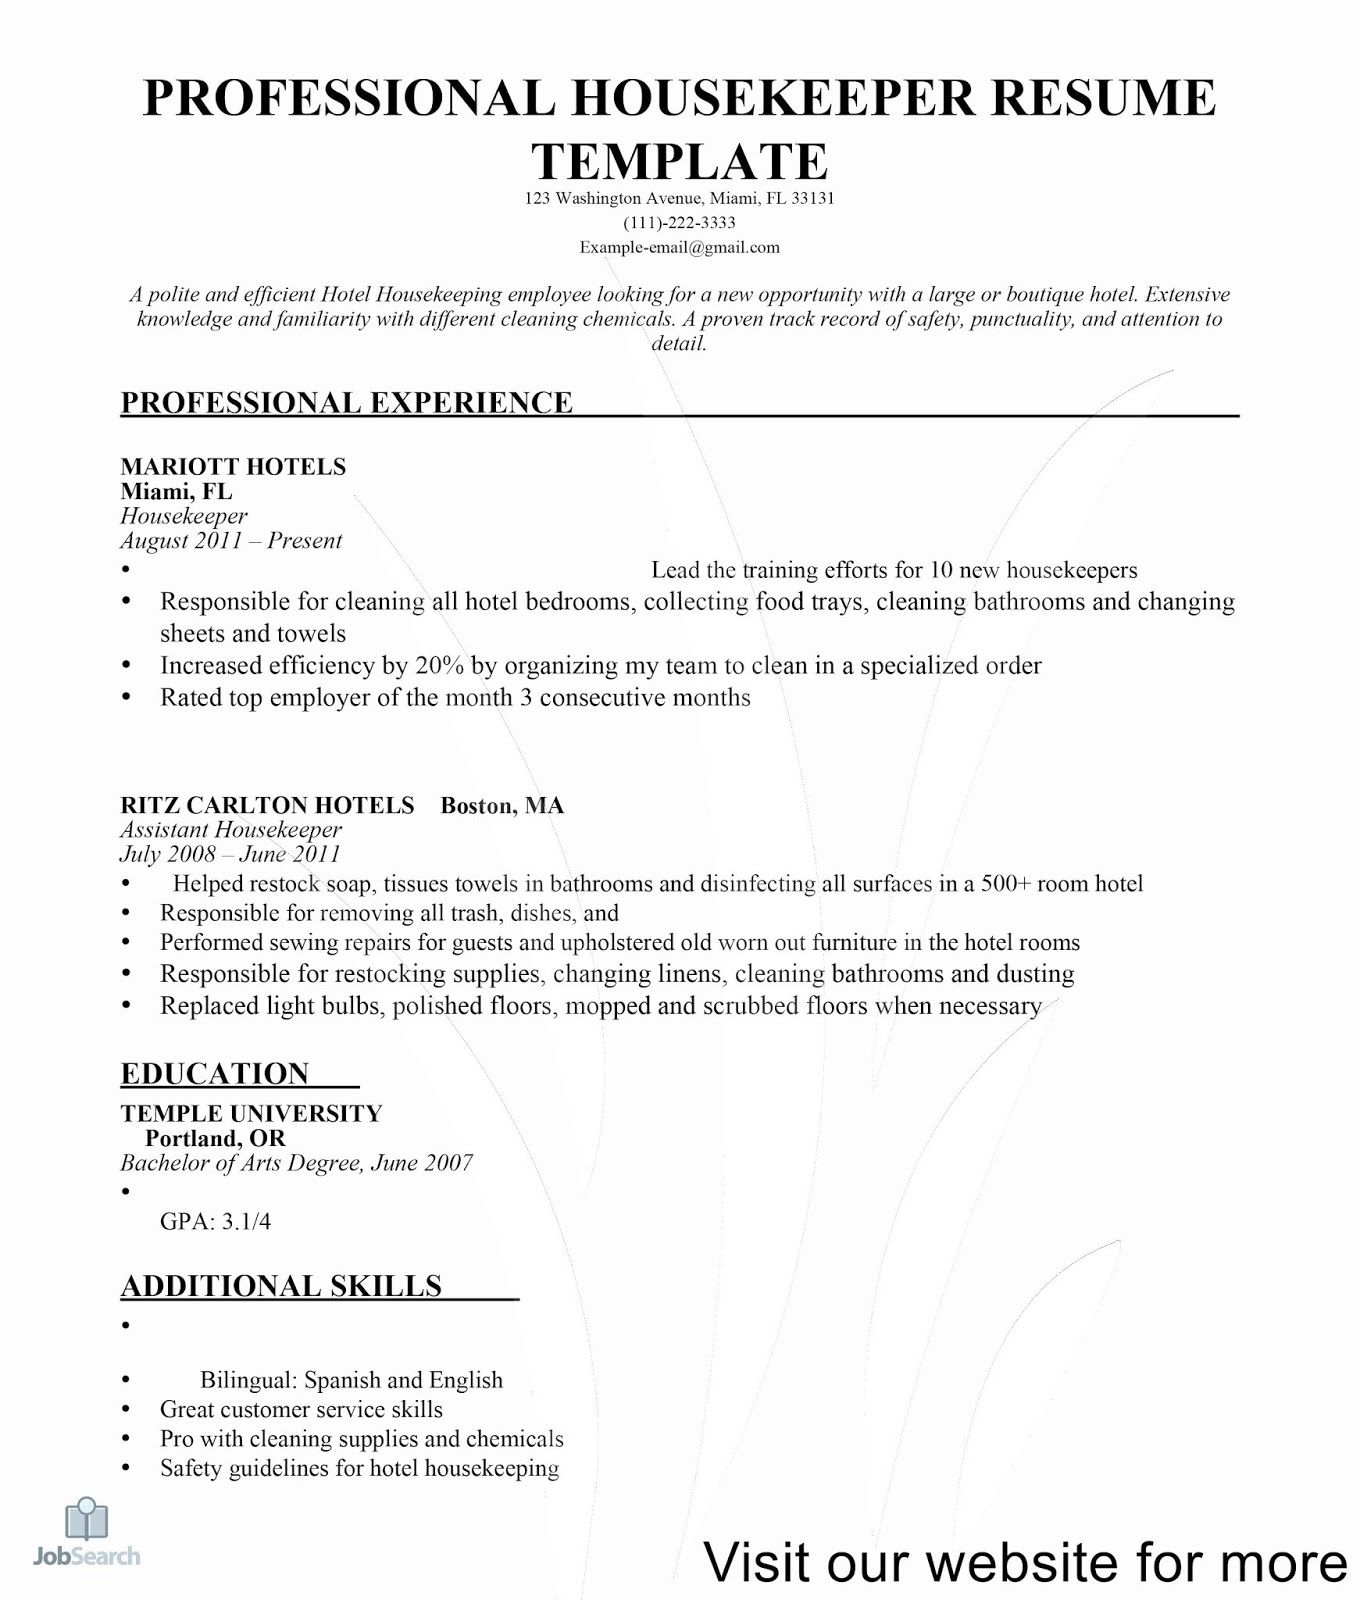 house keeping resume template 2020, housekeeping job brand manager cv examples best format for engineers brief description yourself